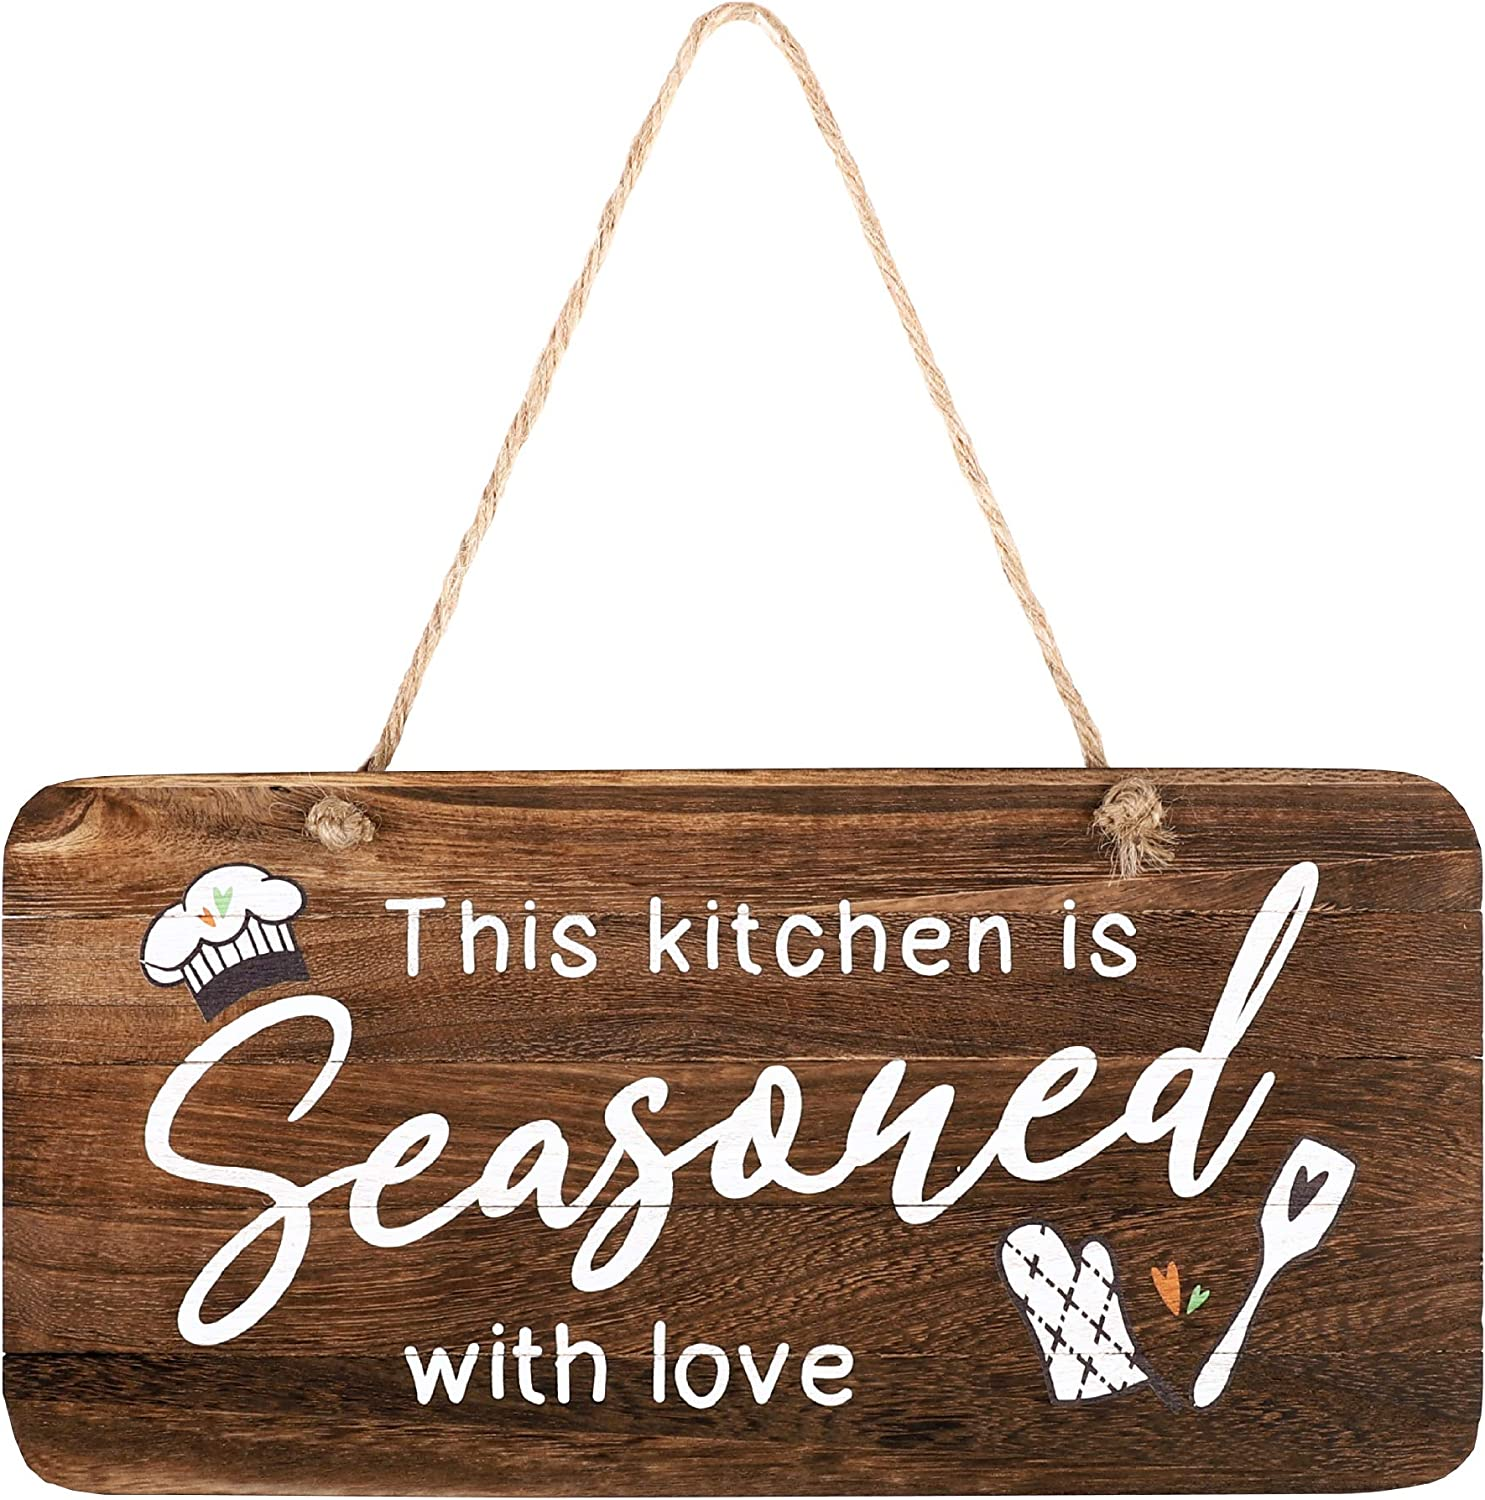 "Rustic Wood Kitchen Sign, This Kitchen is Seasoned with Love. Real Pallet Wood Sign for Farmhouse Home Decor, Rustic Home Wall Decor with Love Sign. 6"" x12"""